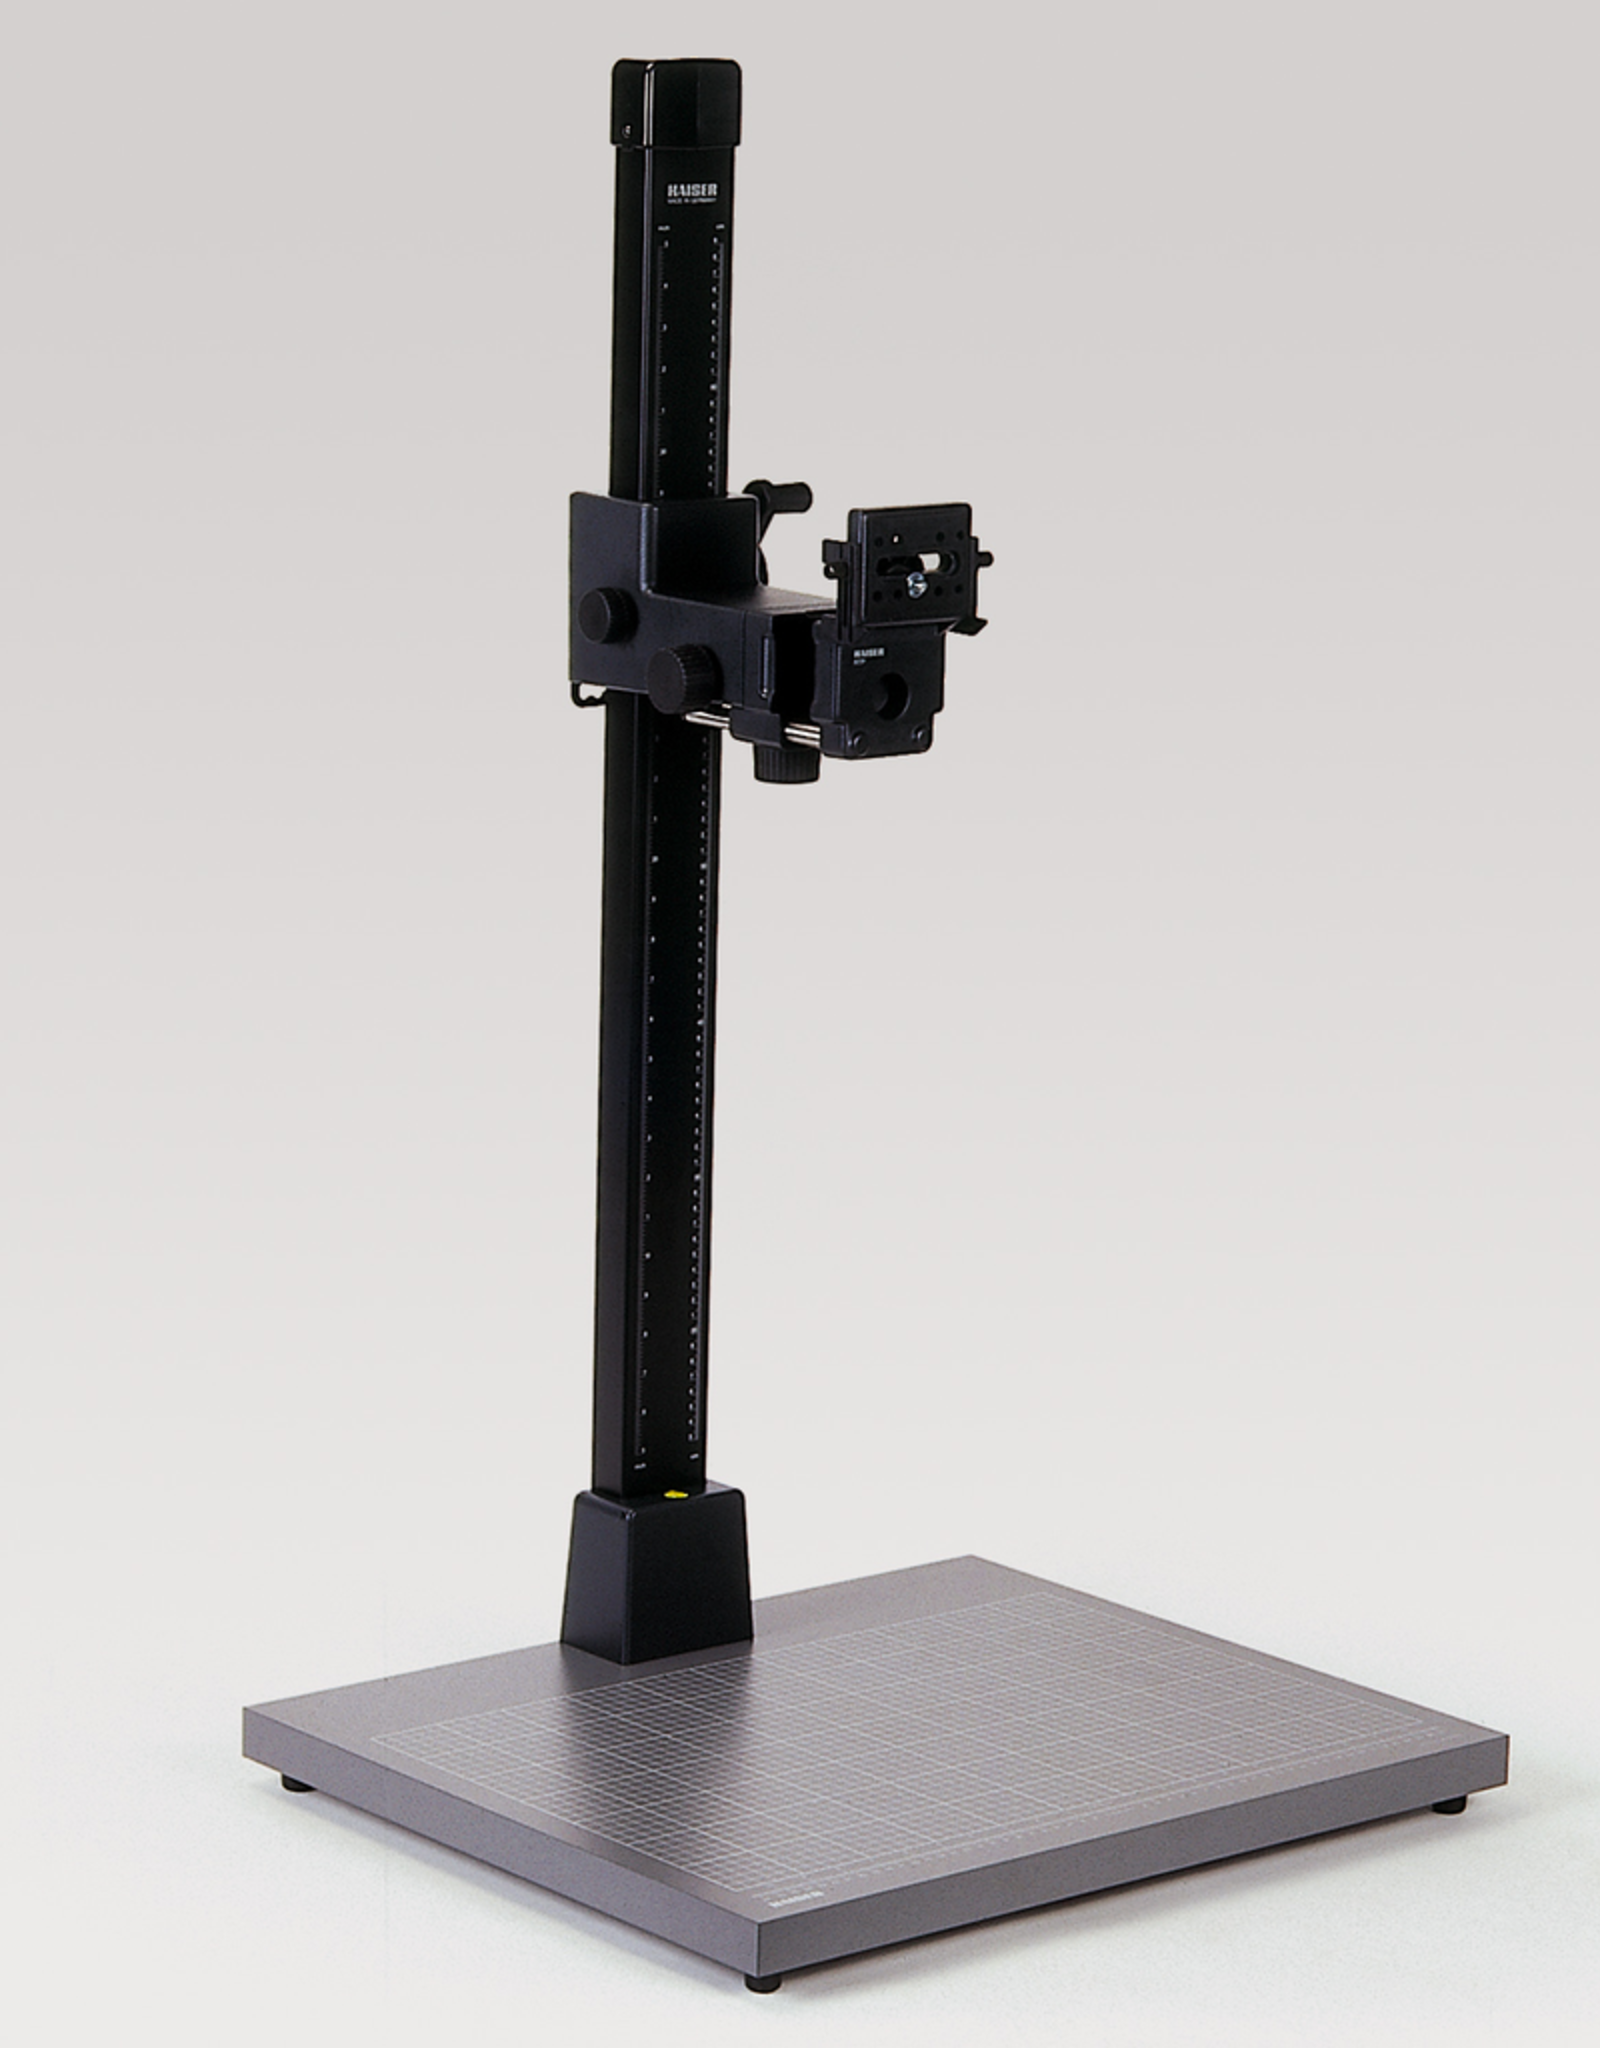 """Kaiser Kaiser Copy Stand RS 10, with camera arm RTP (# 5524), column height 1 m (3 feet 3"""") with gear rack, baseboard 60 x 50 cm (23.6 x 19.7 """")"""